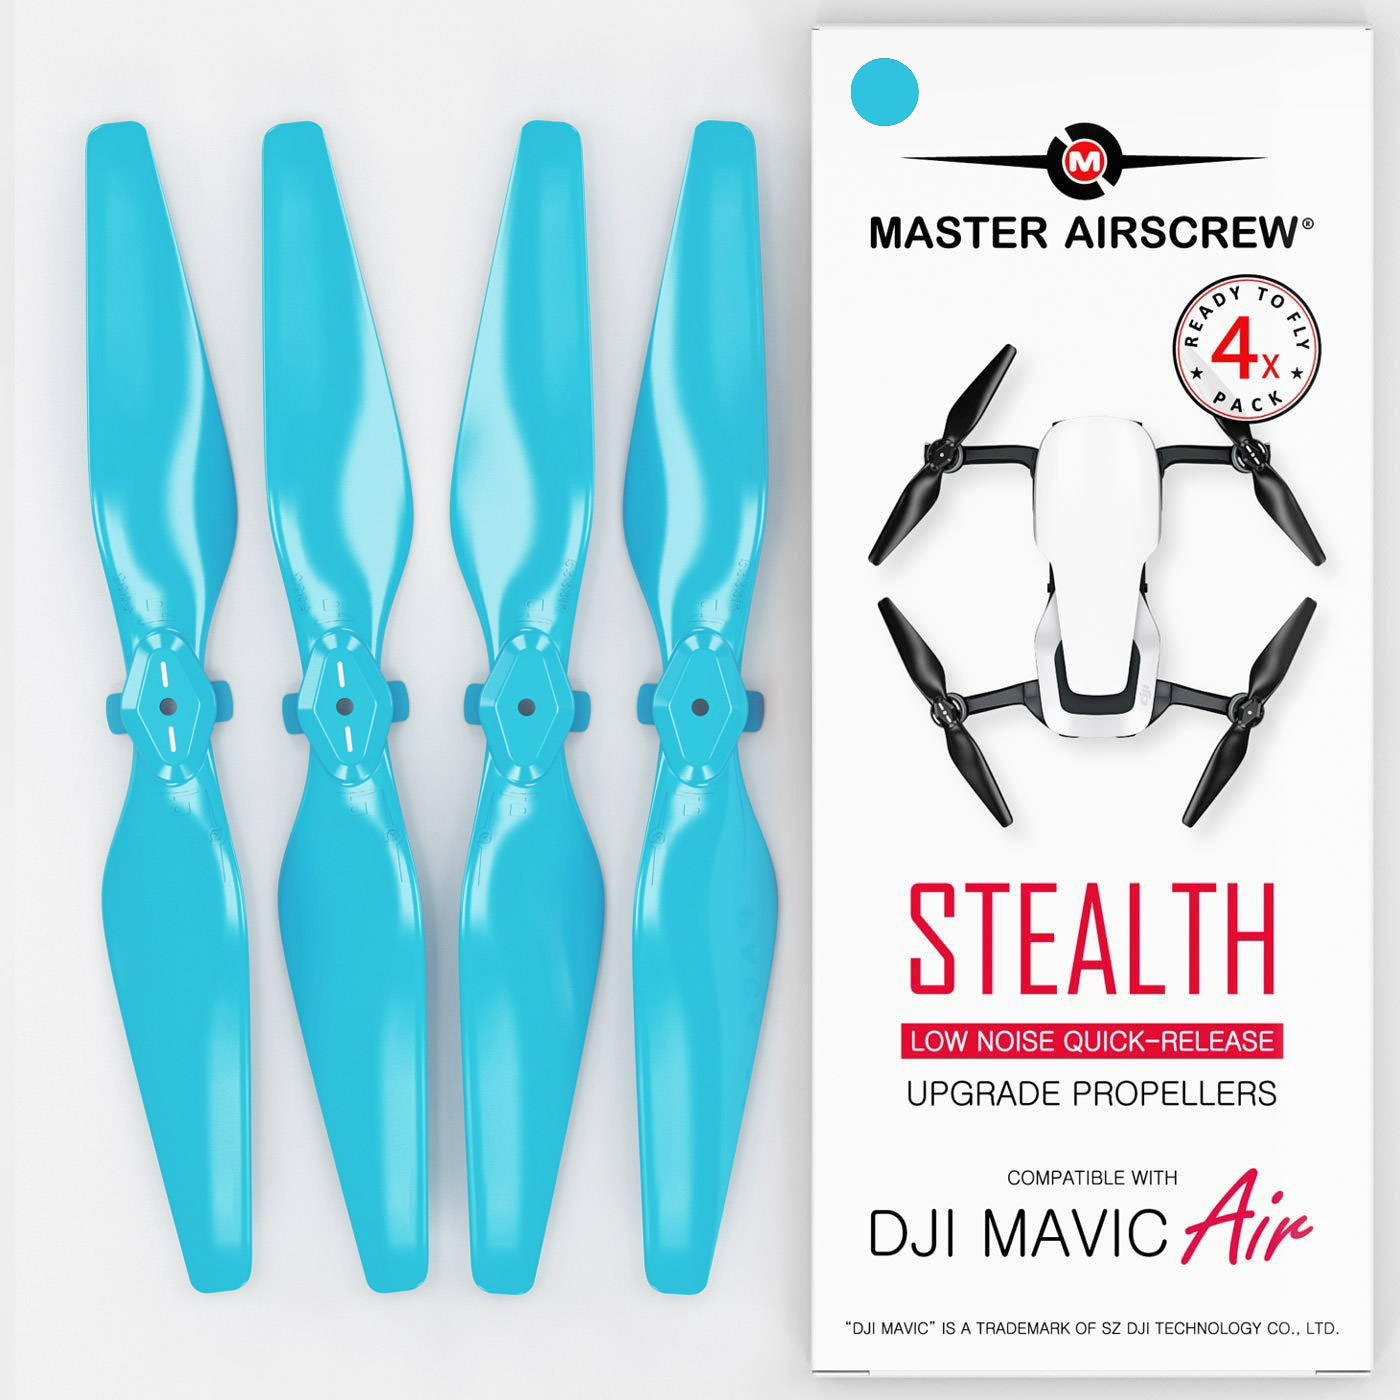 DJI Mavic Air Low-Noise STEALTH Upgrade Propellers V2 - x4